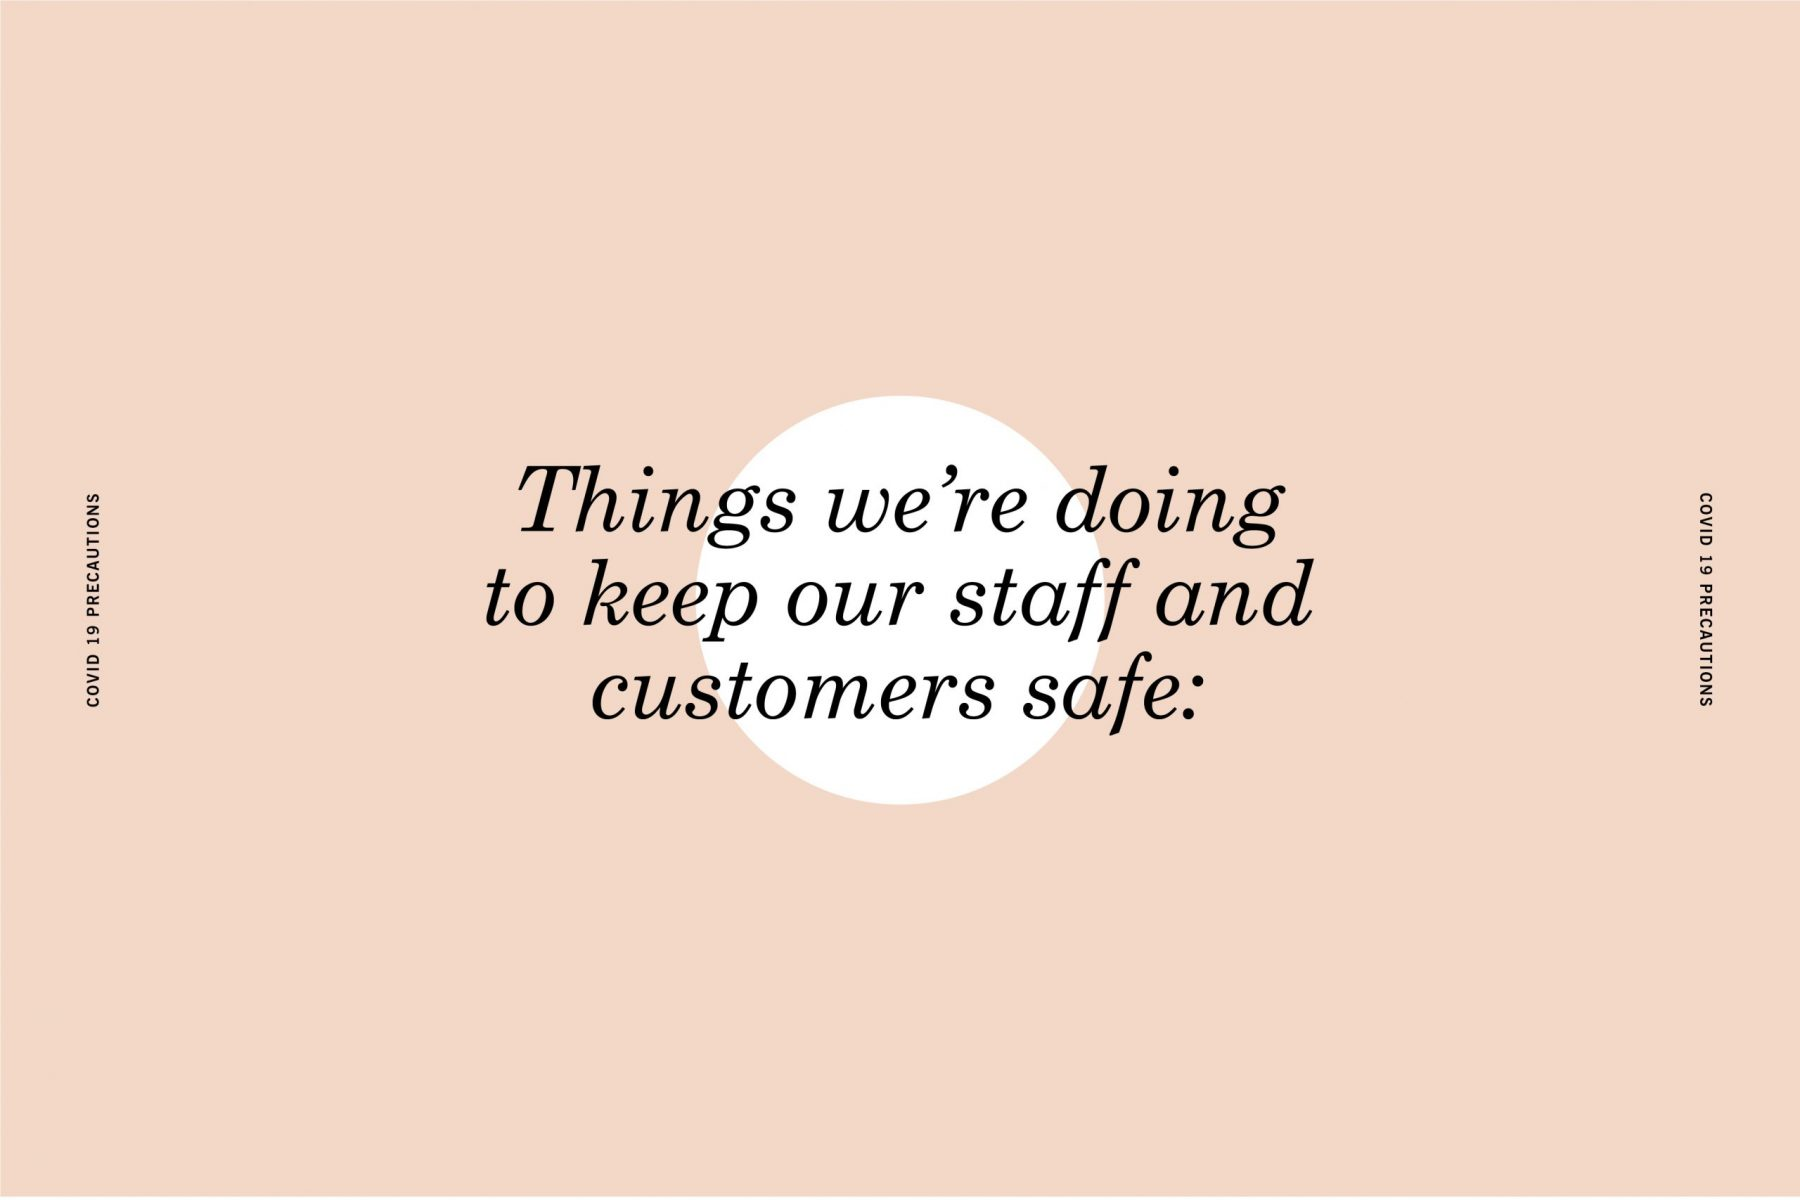 STAFF & CUSTOMER SAFETY